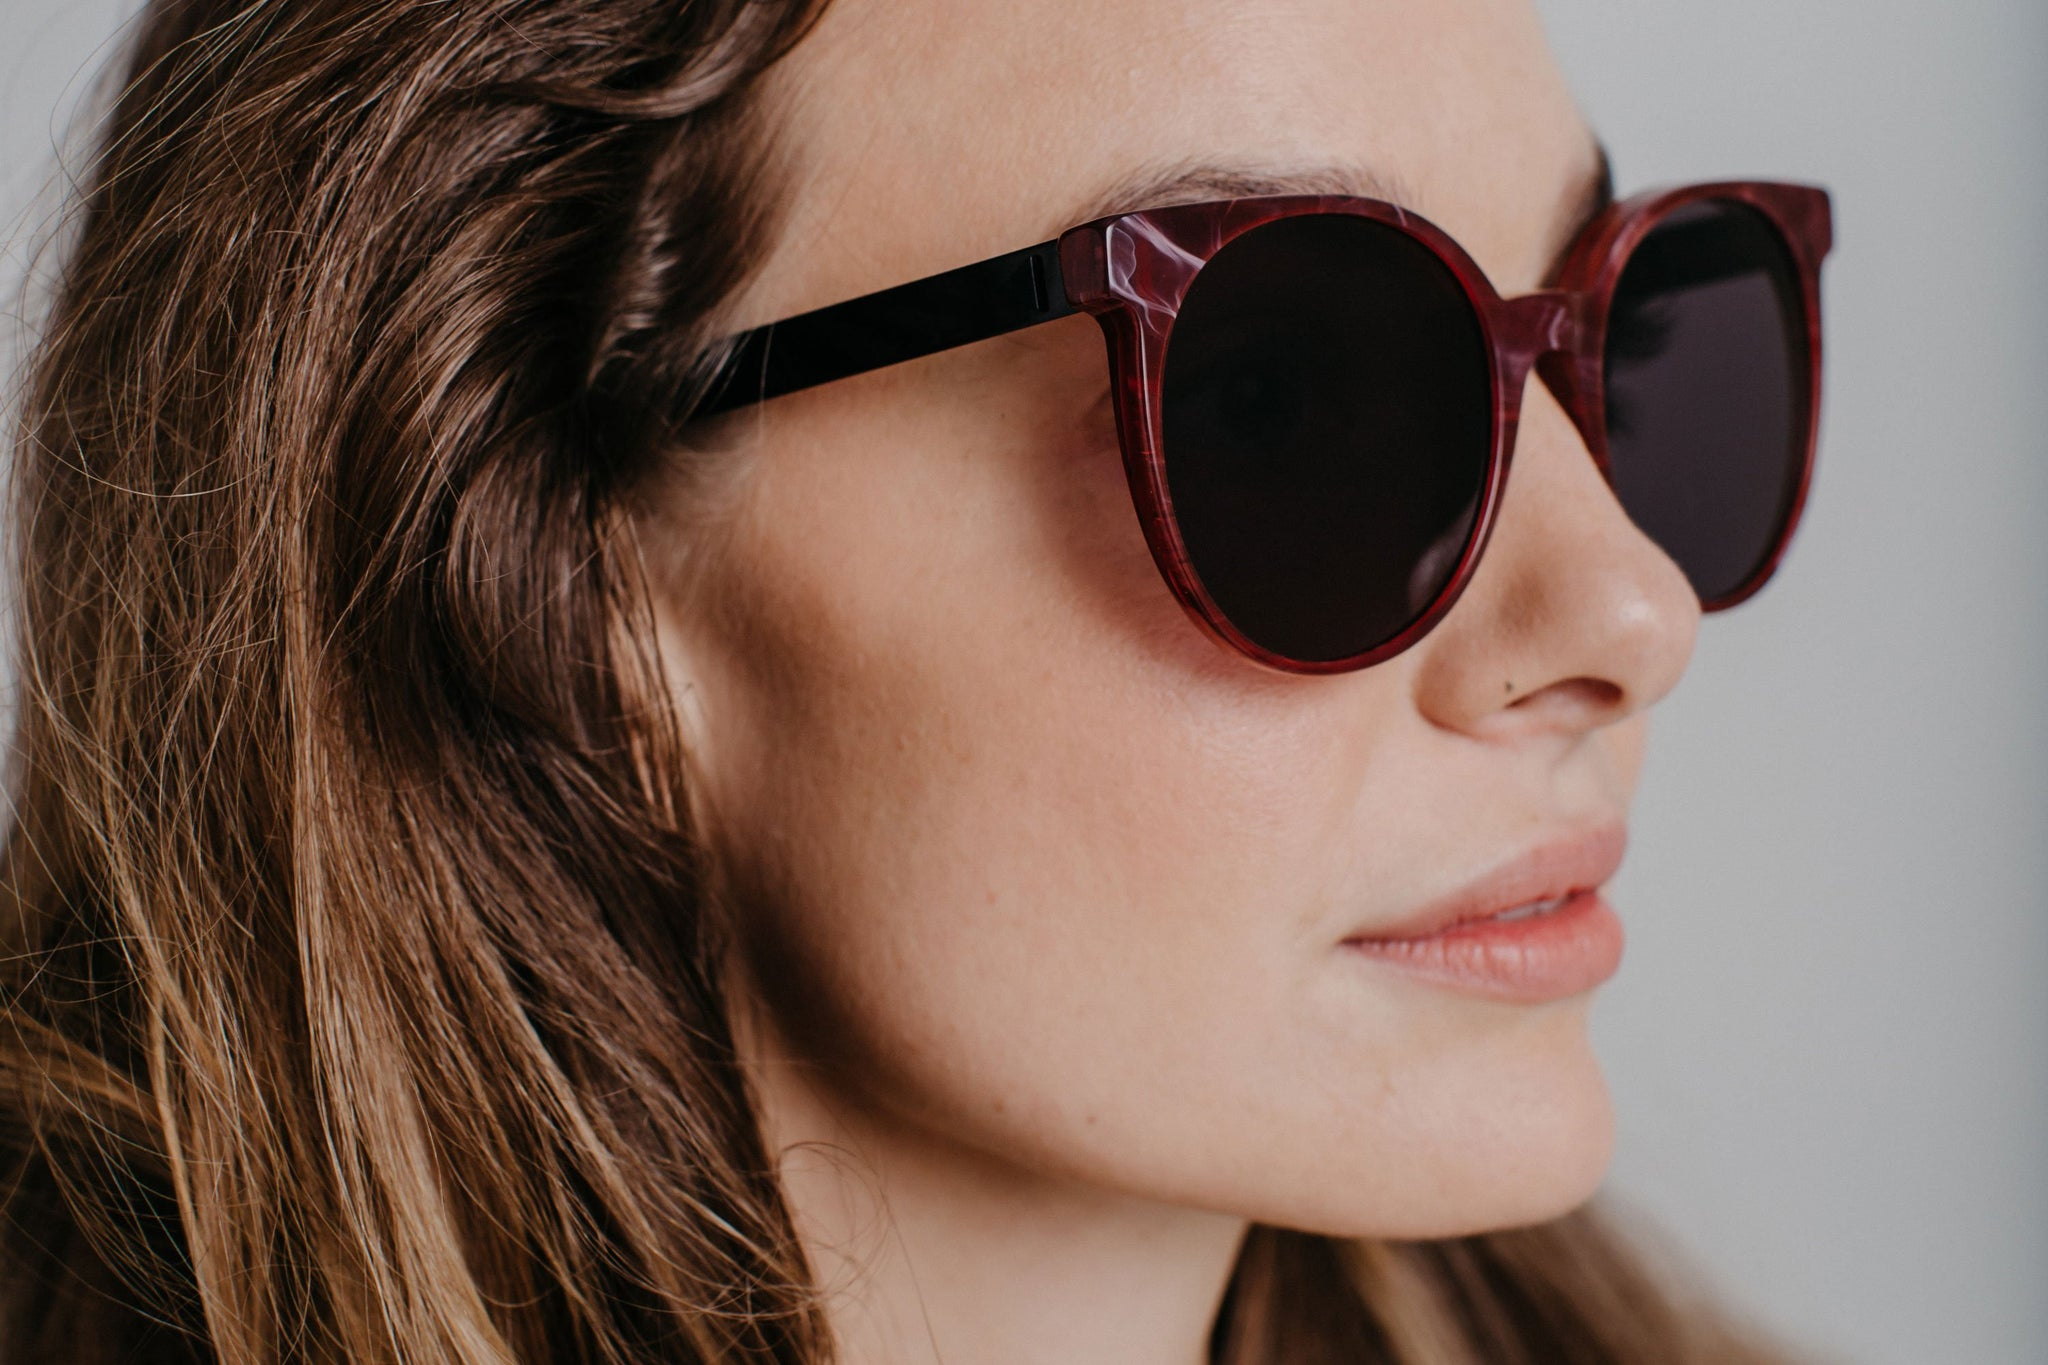 Juliette Sunglasses, So-Ya, Found By Lesetta